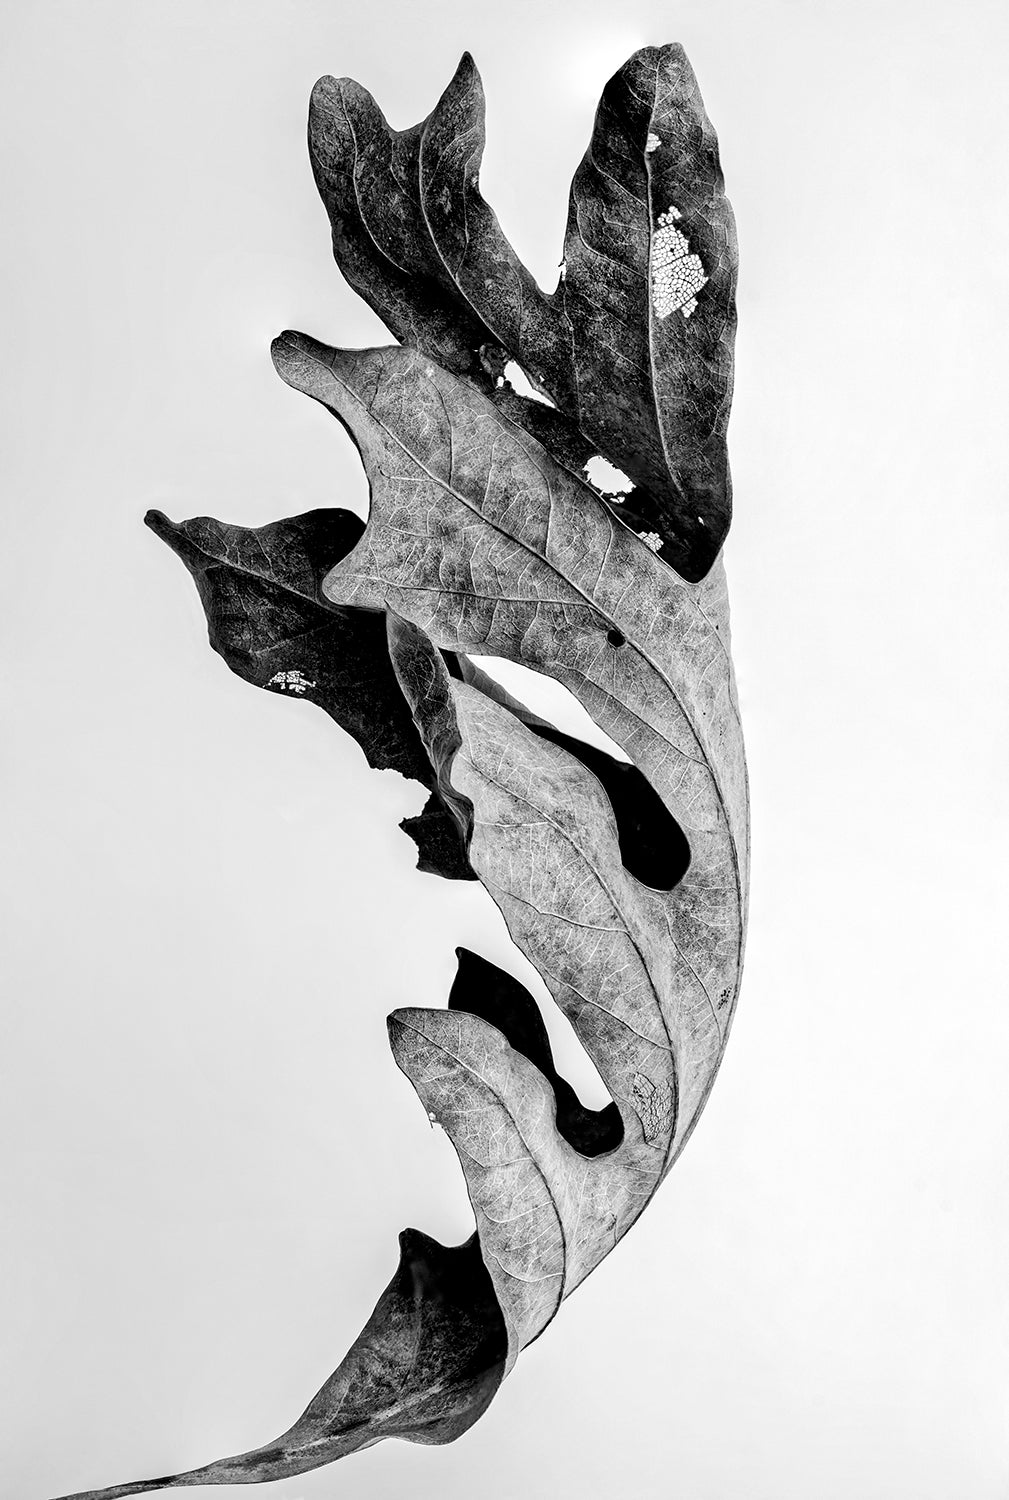 Curled Autumn Leaf - Black and White Photograph by Keith Dotson. Buy a print.